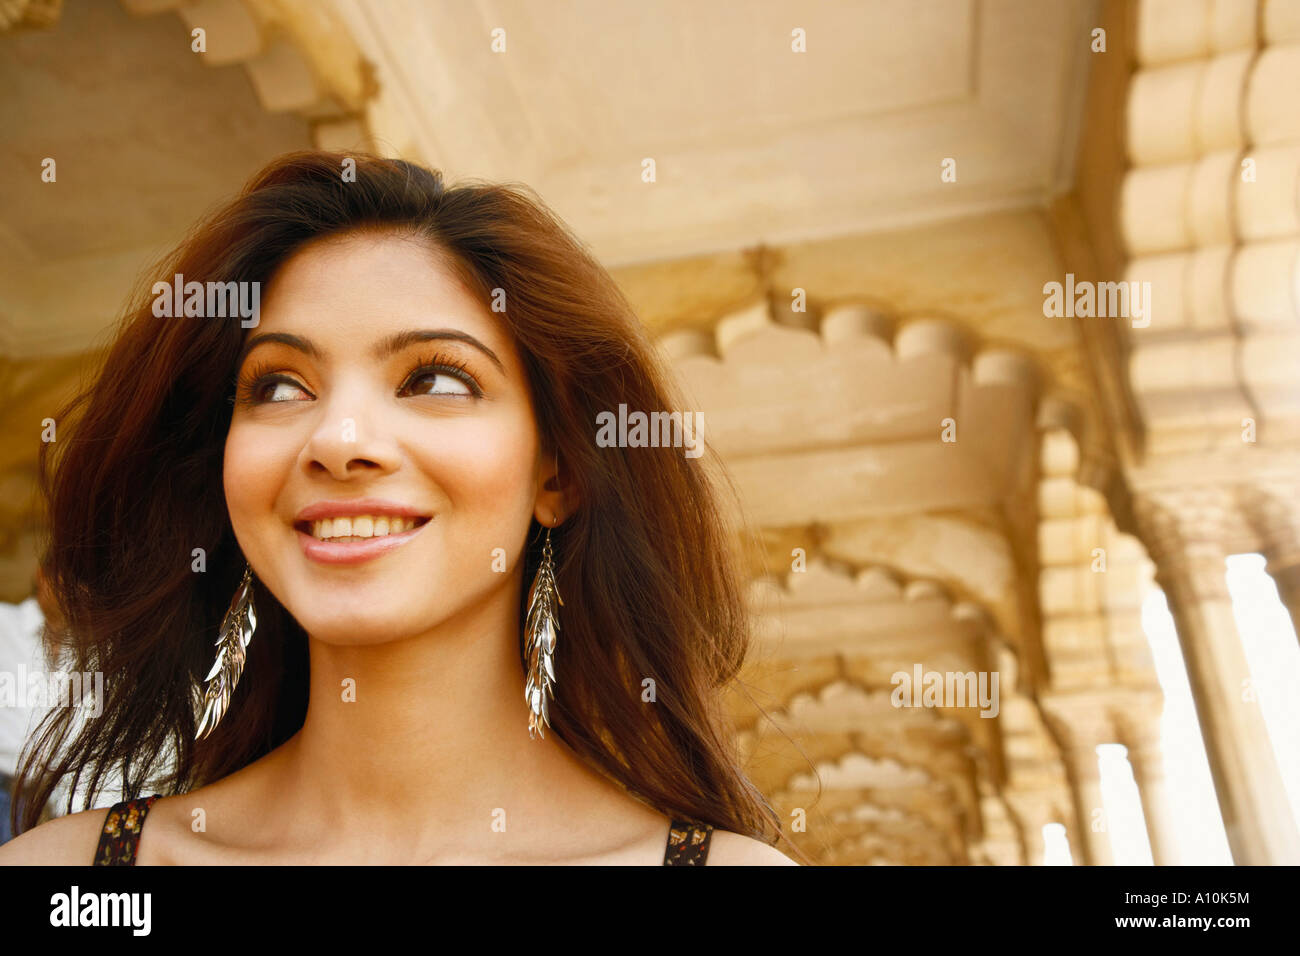 Close-up di una giovane donna sorridente, al Forte di Agra, Agra, Uttar Pradesh, India Foto Stock